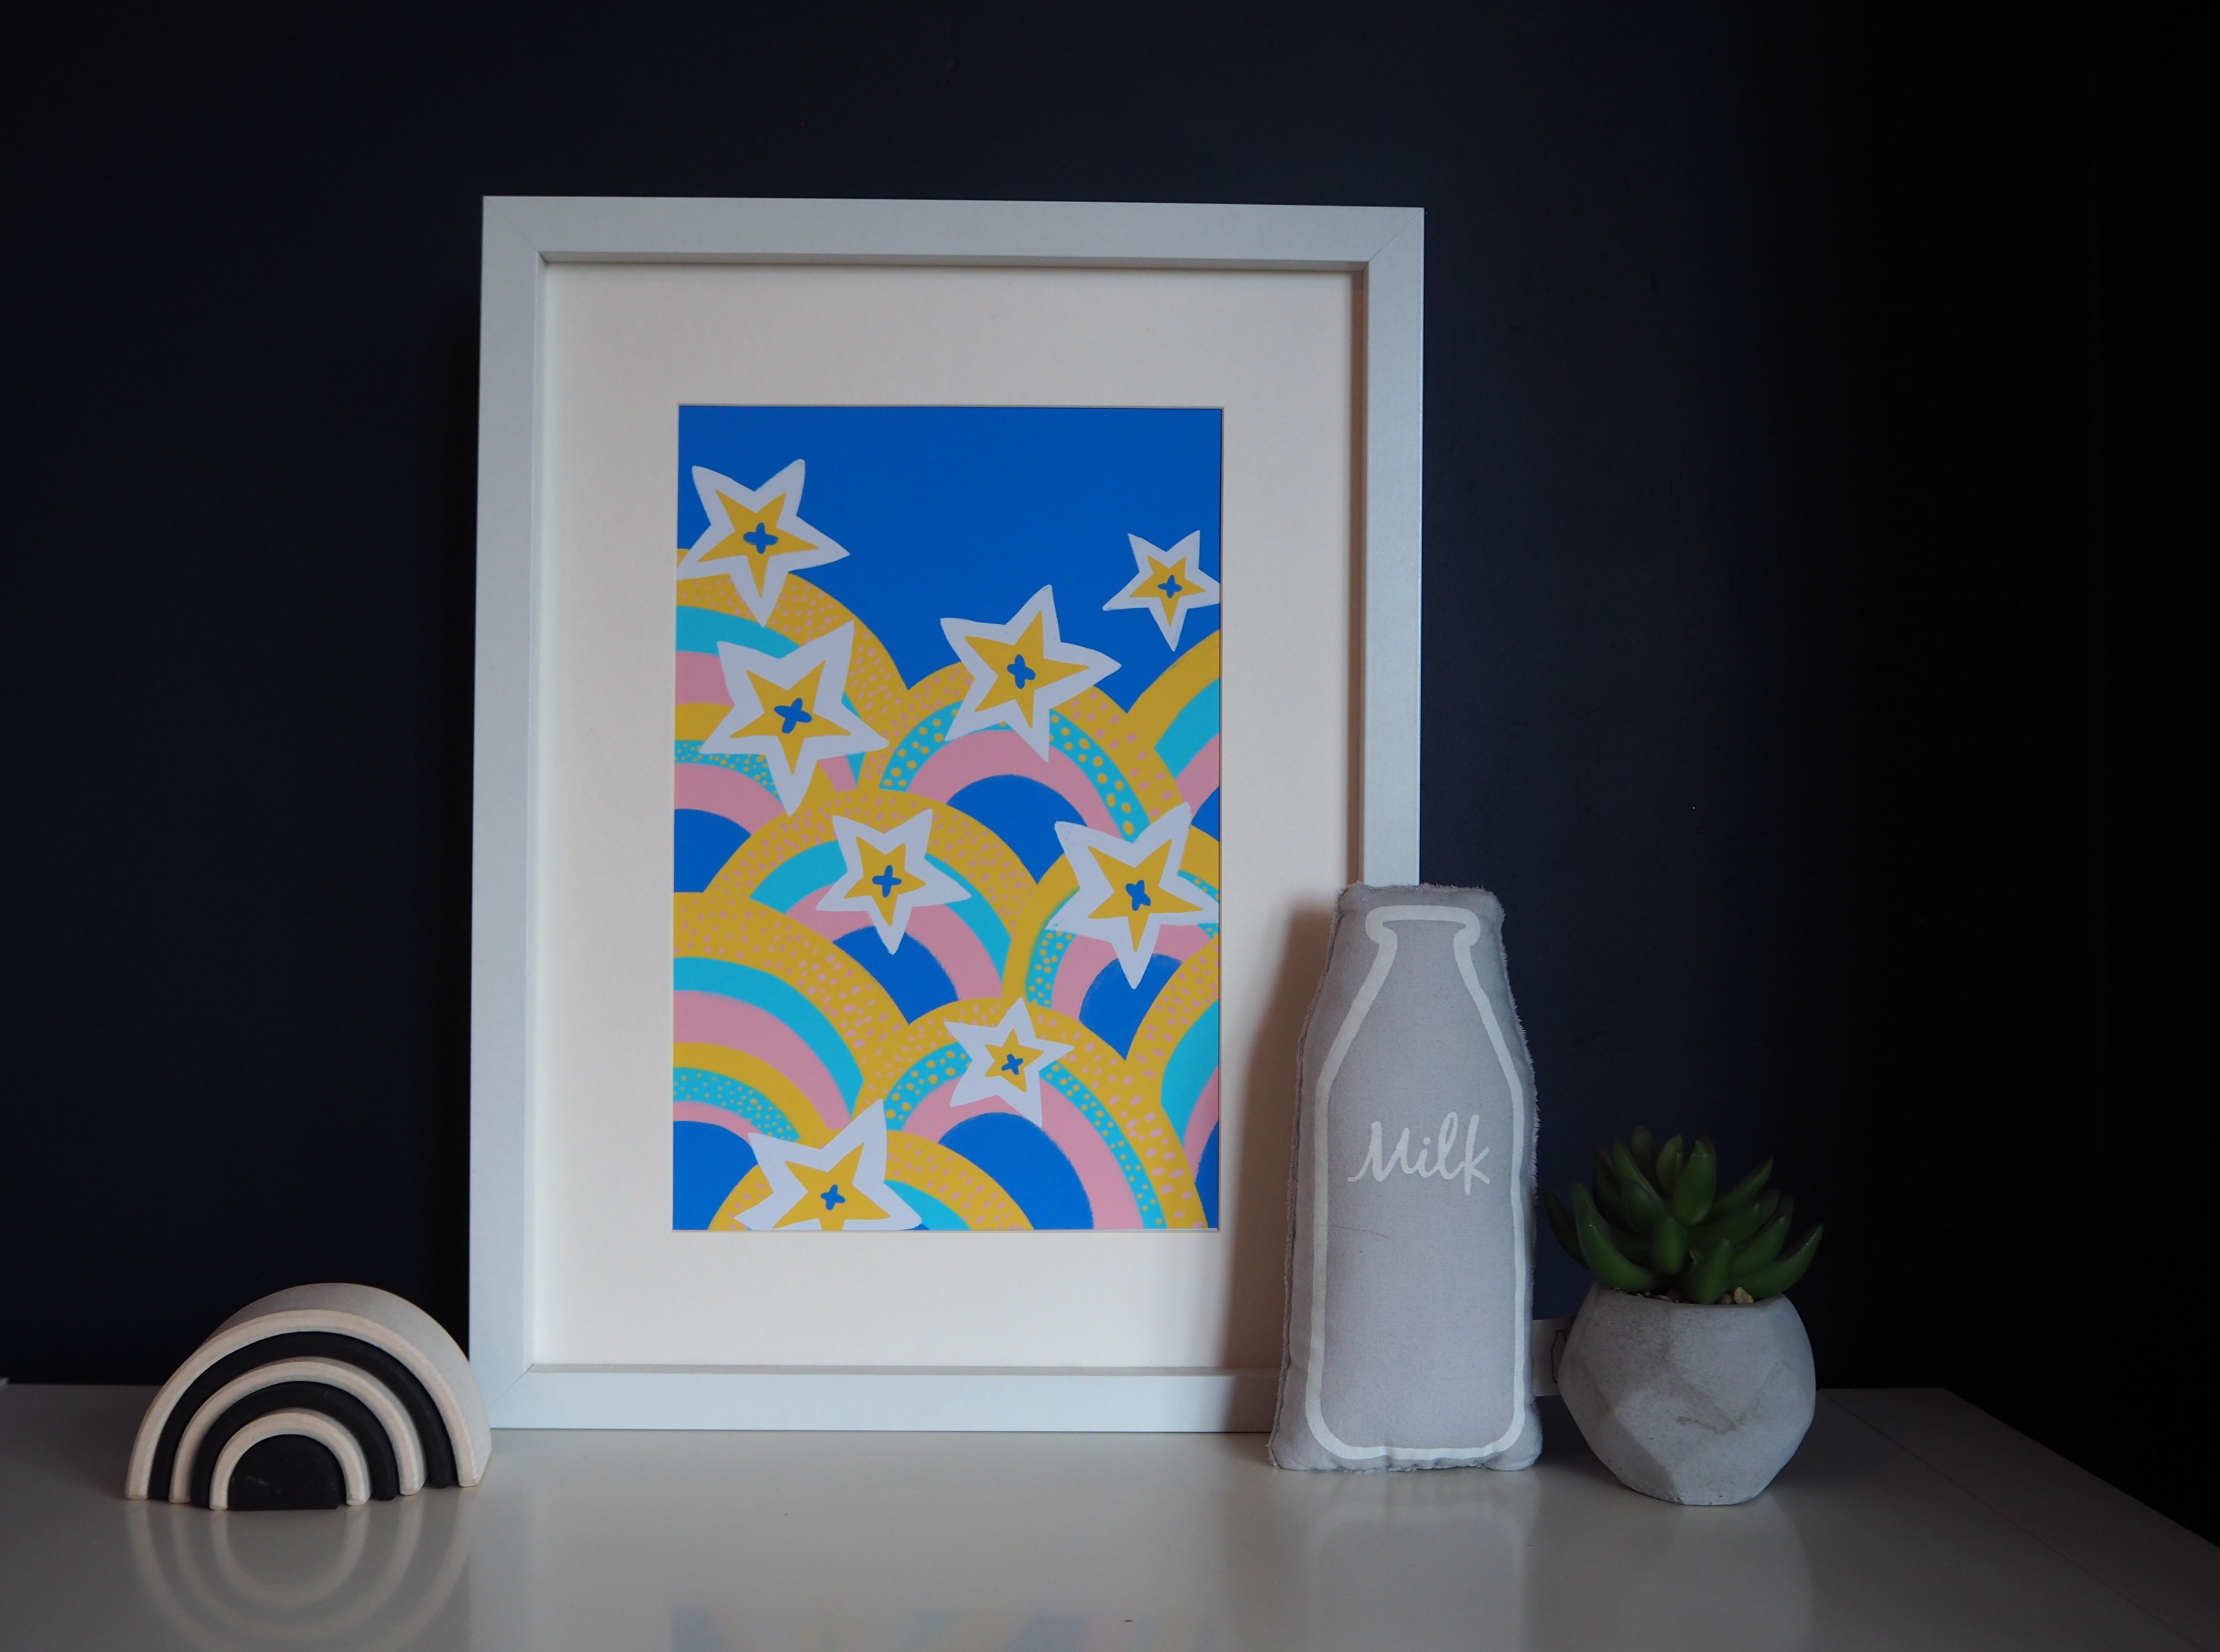 starbow stars and rainbow home prints elle poulson